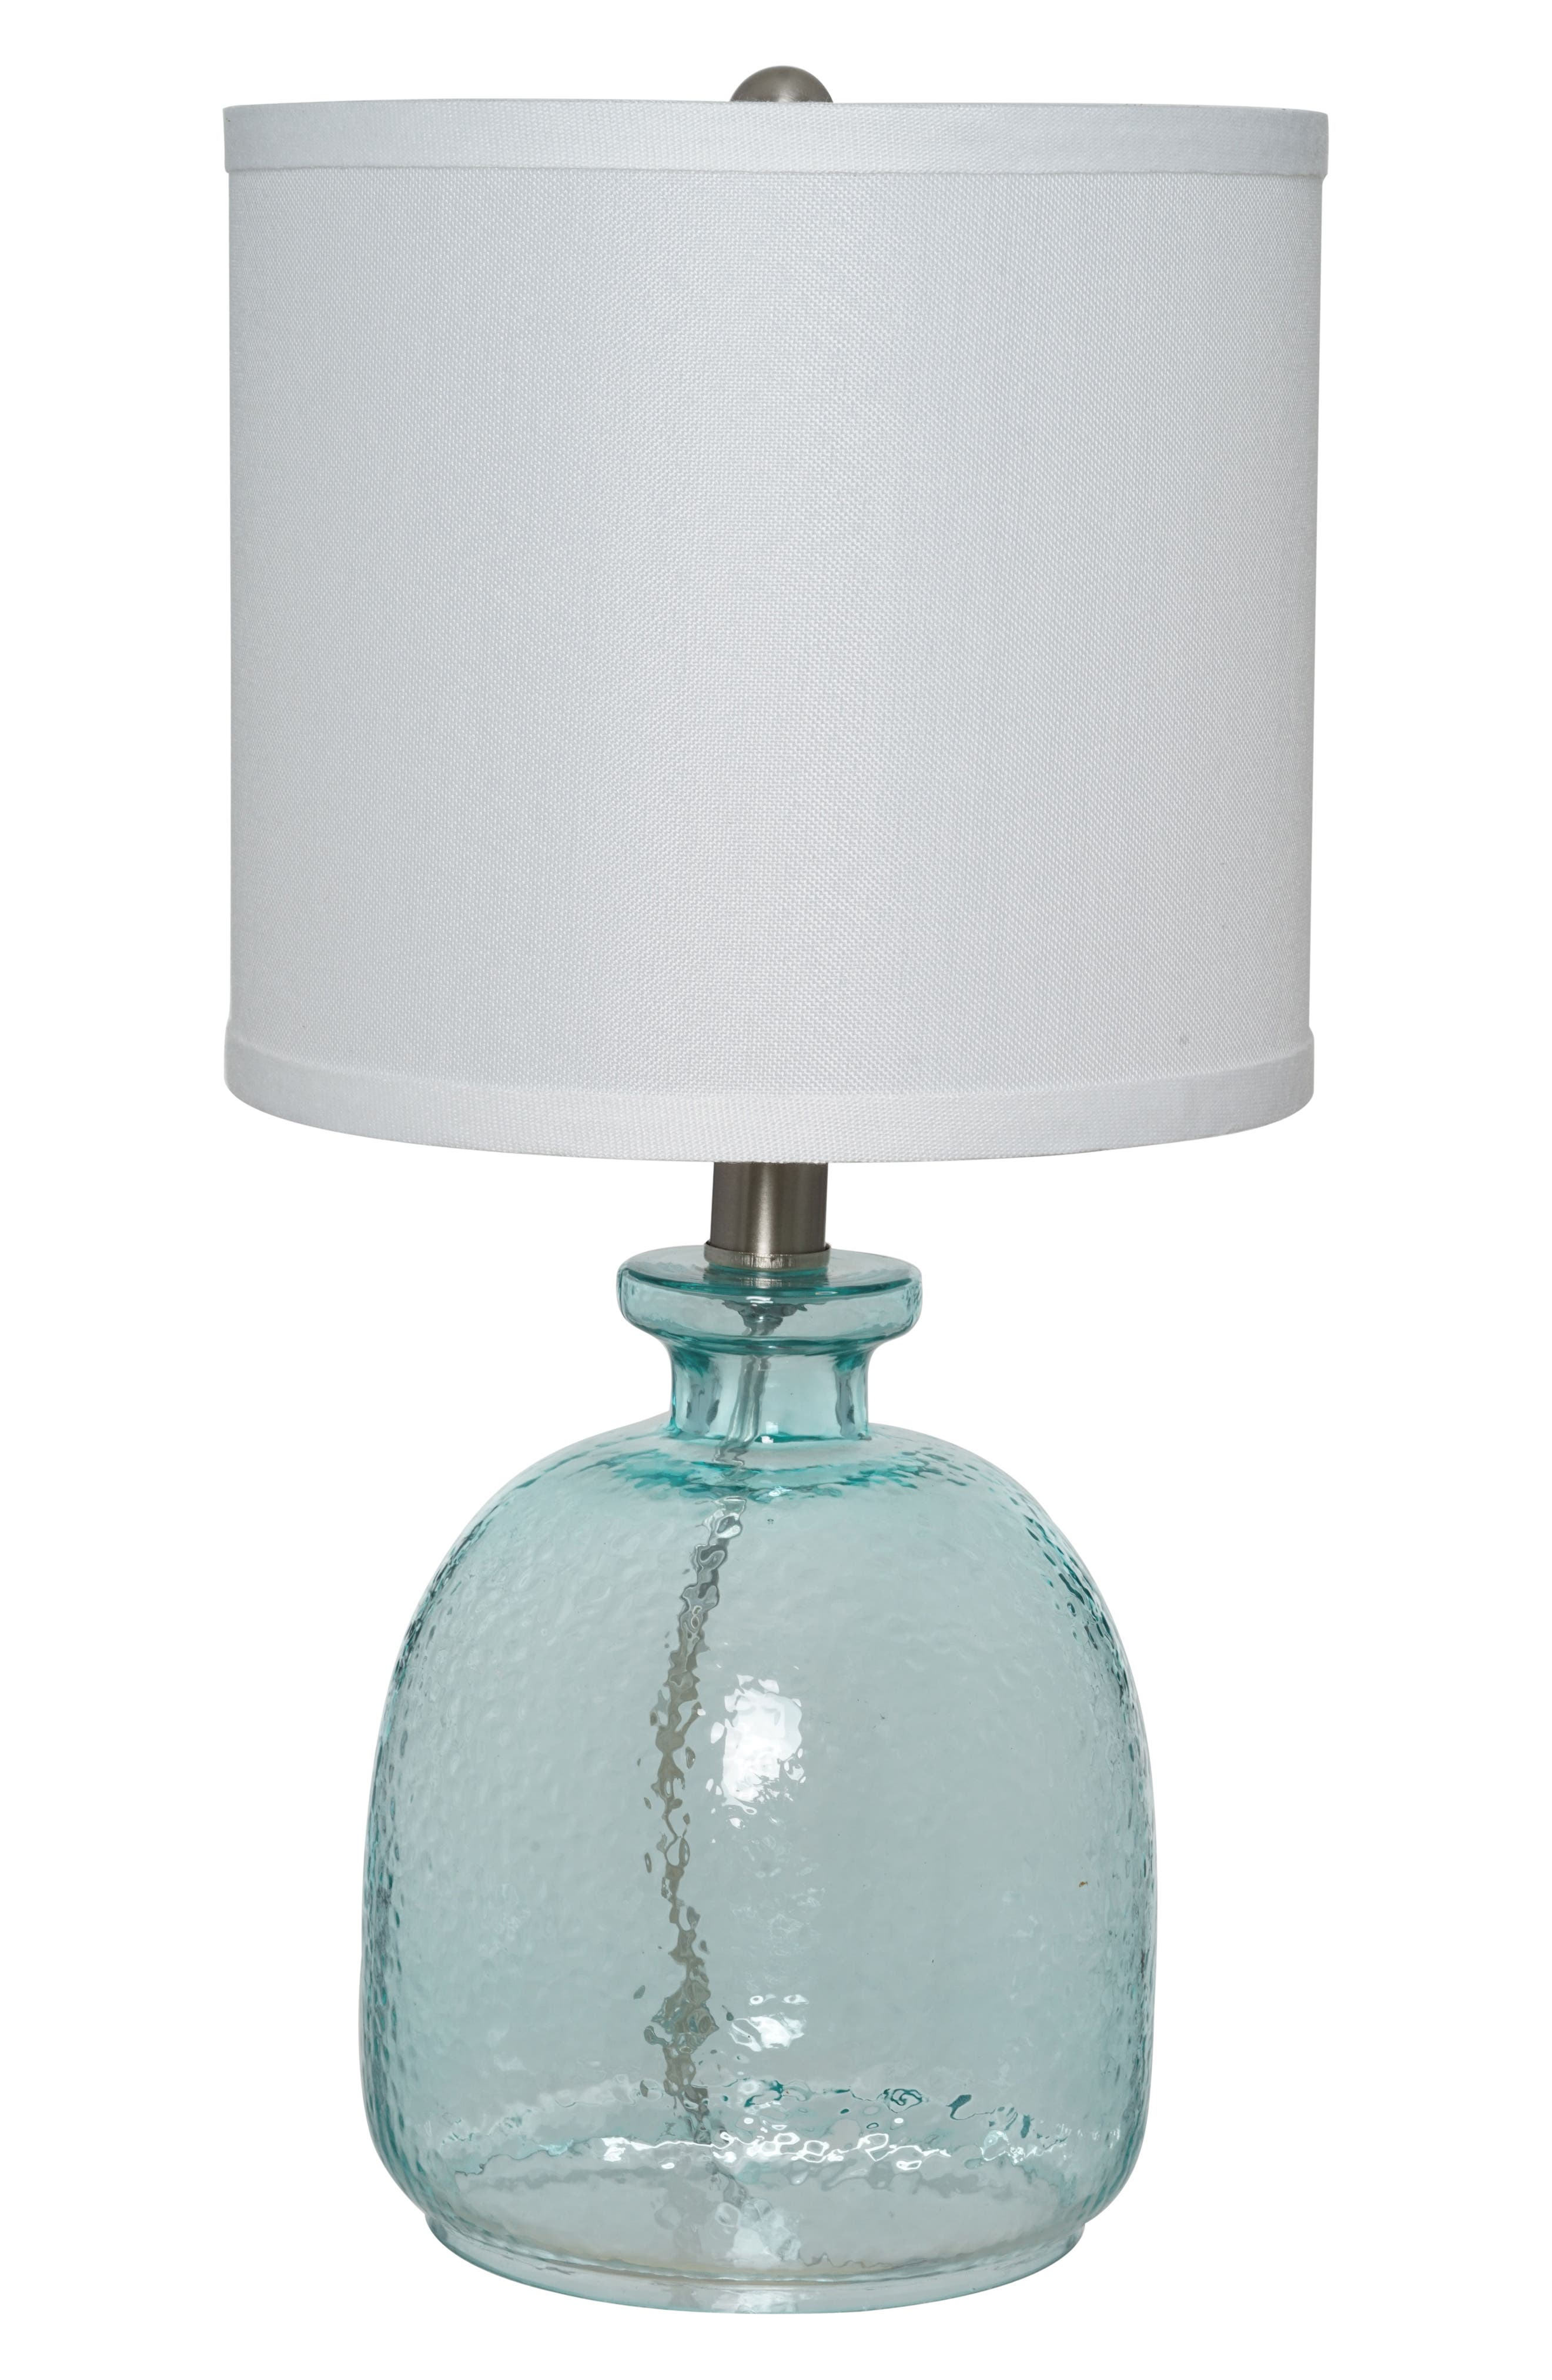 Ocean Glass Accent Lamp,                         Main,                         color, 400